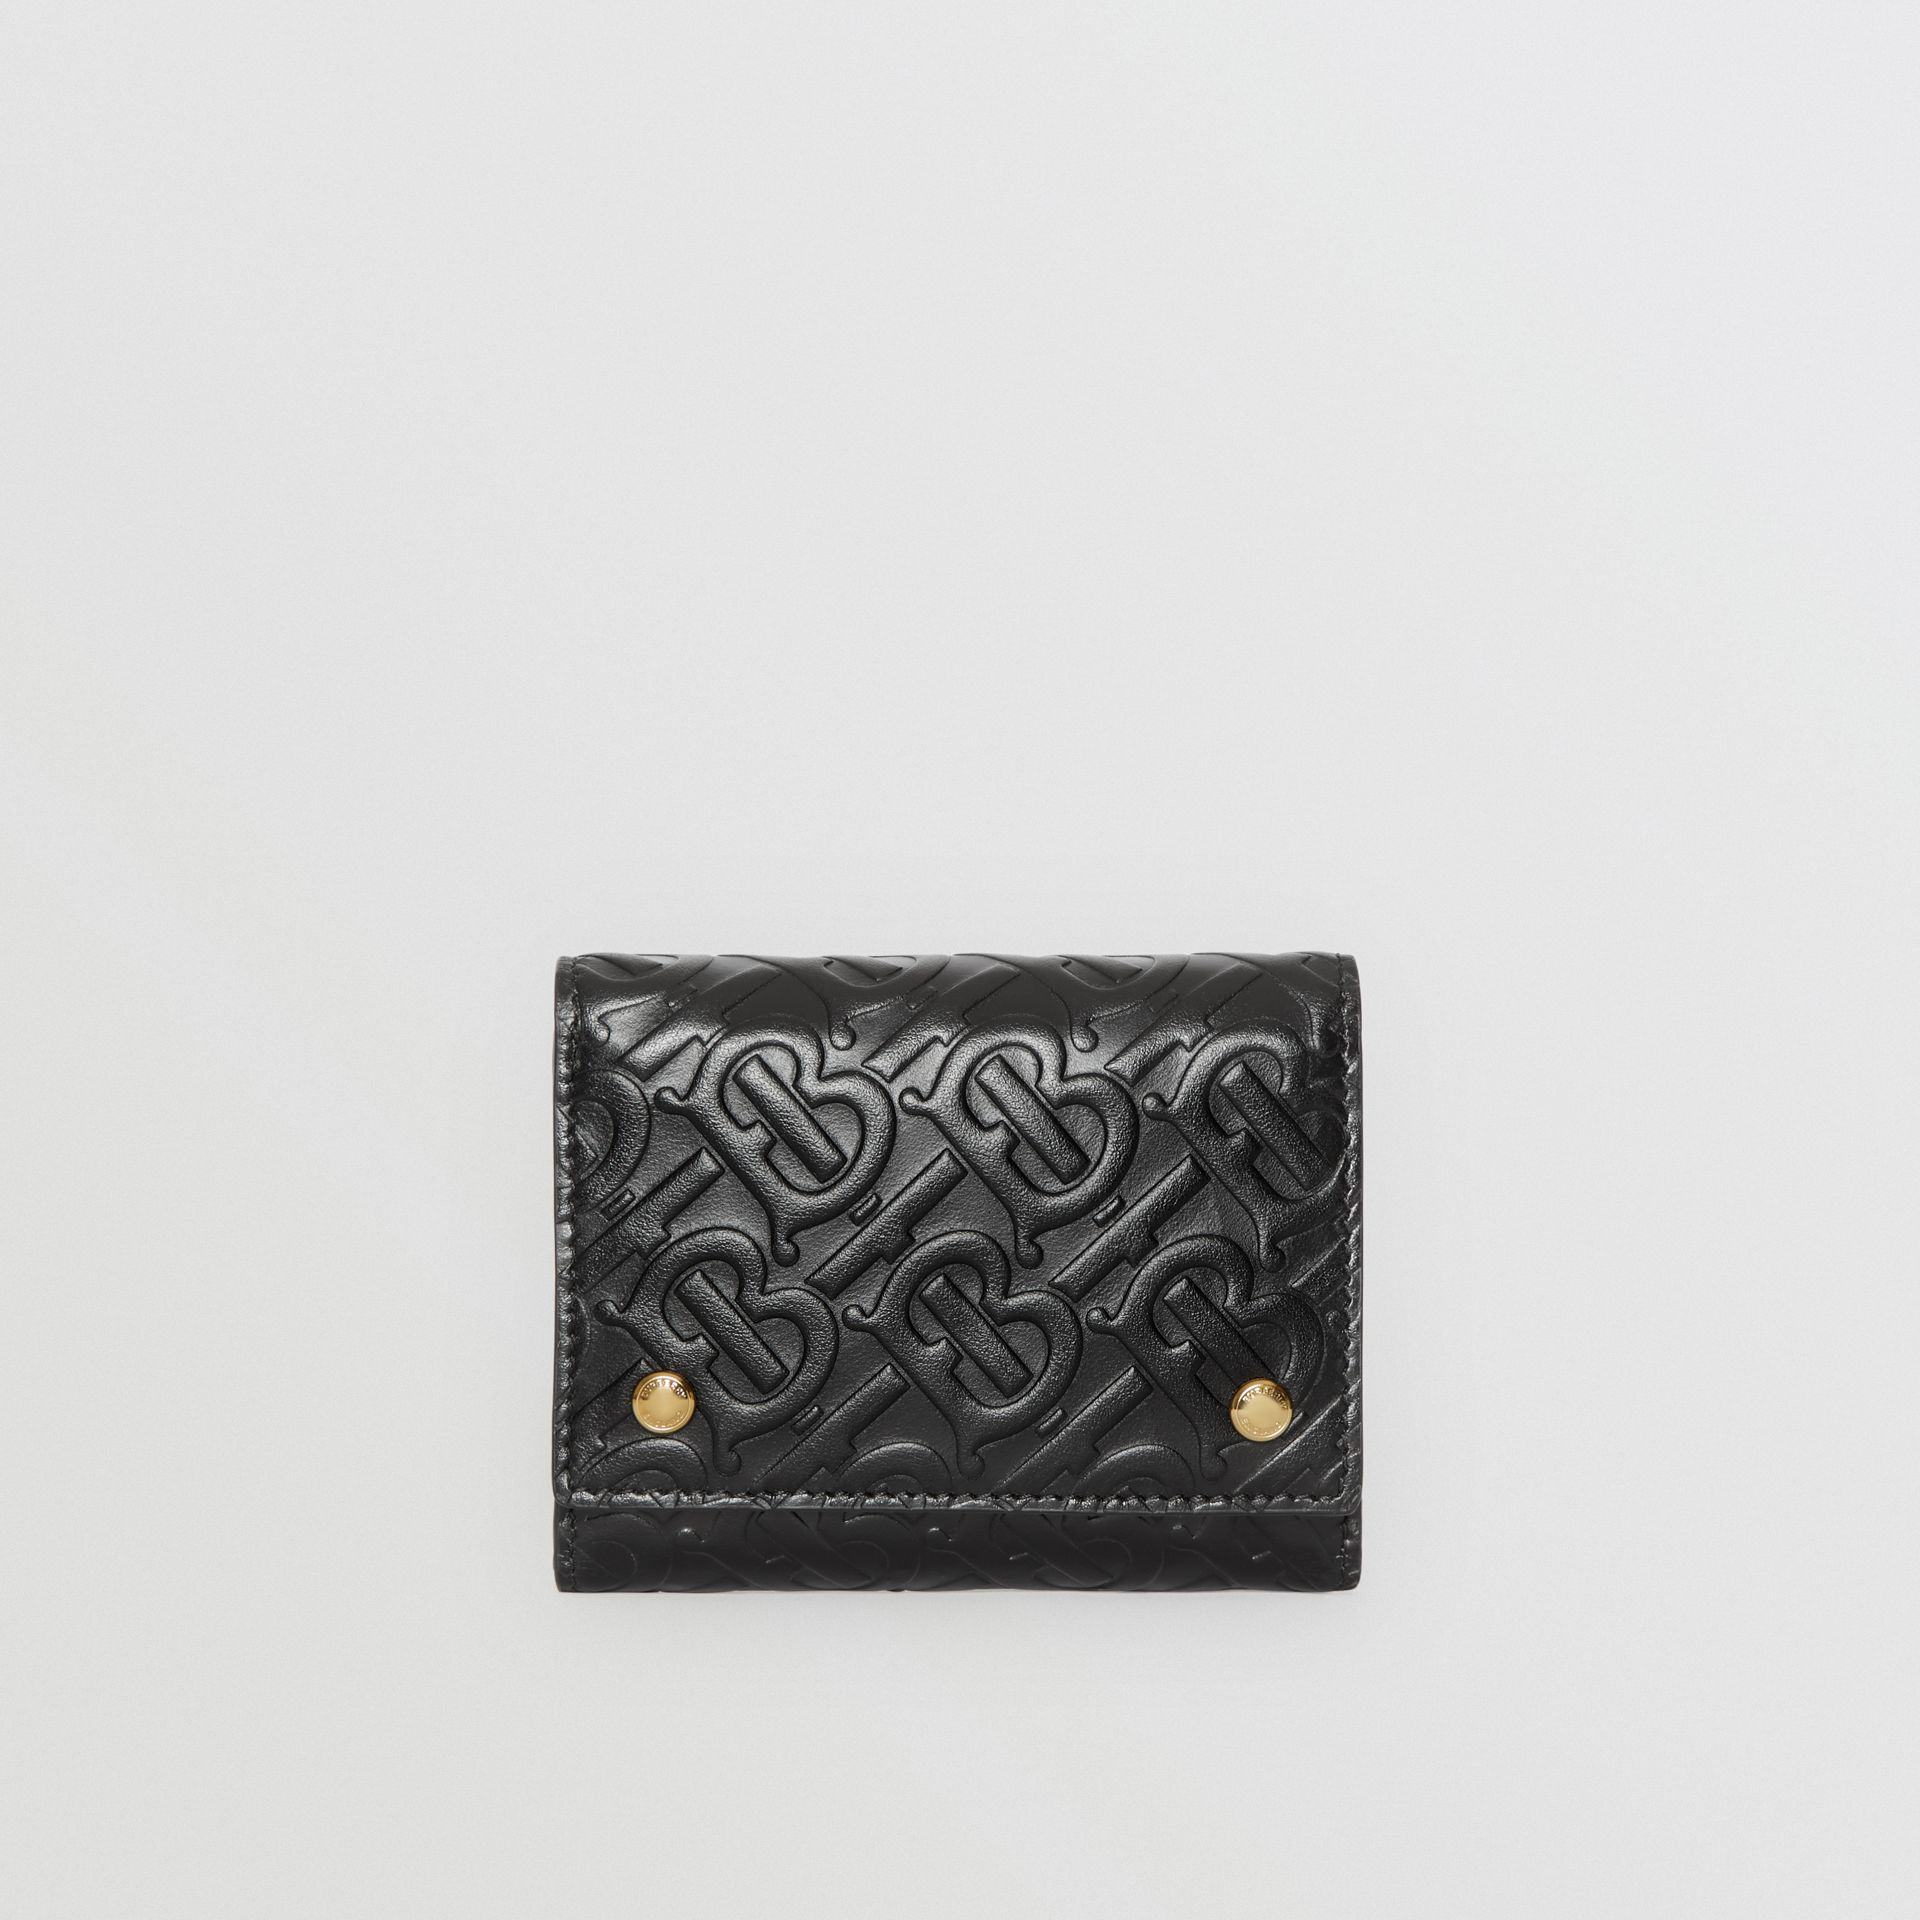 Small Monogram Leather Folding Wallet in Black - Women | Burberry - gallery image 0